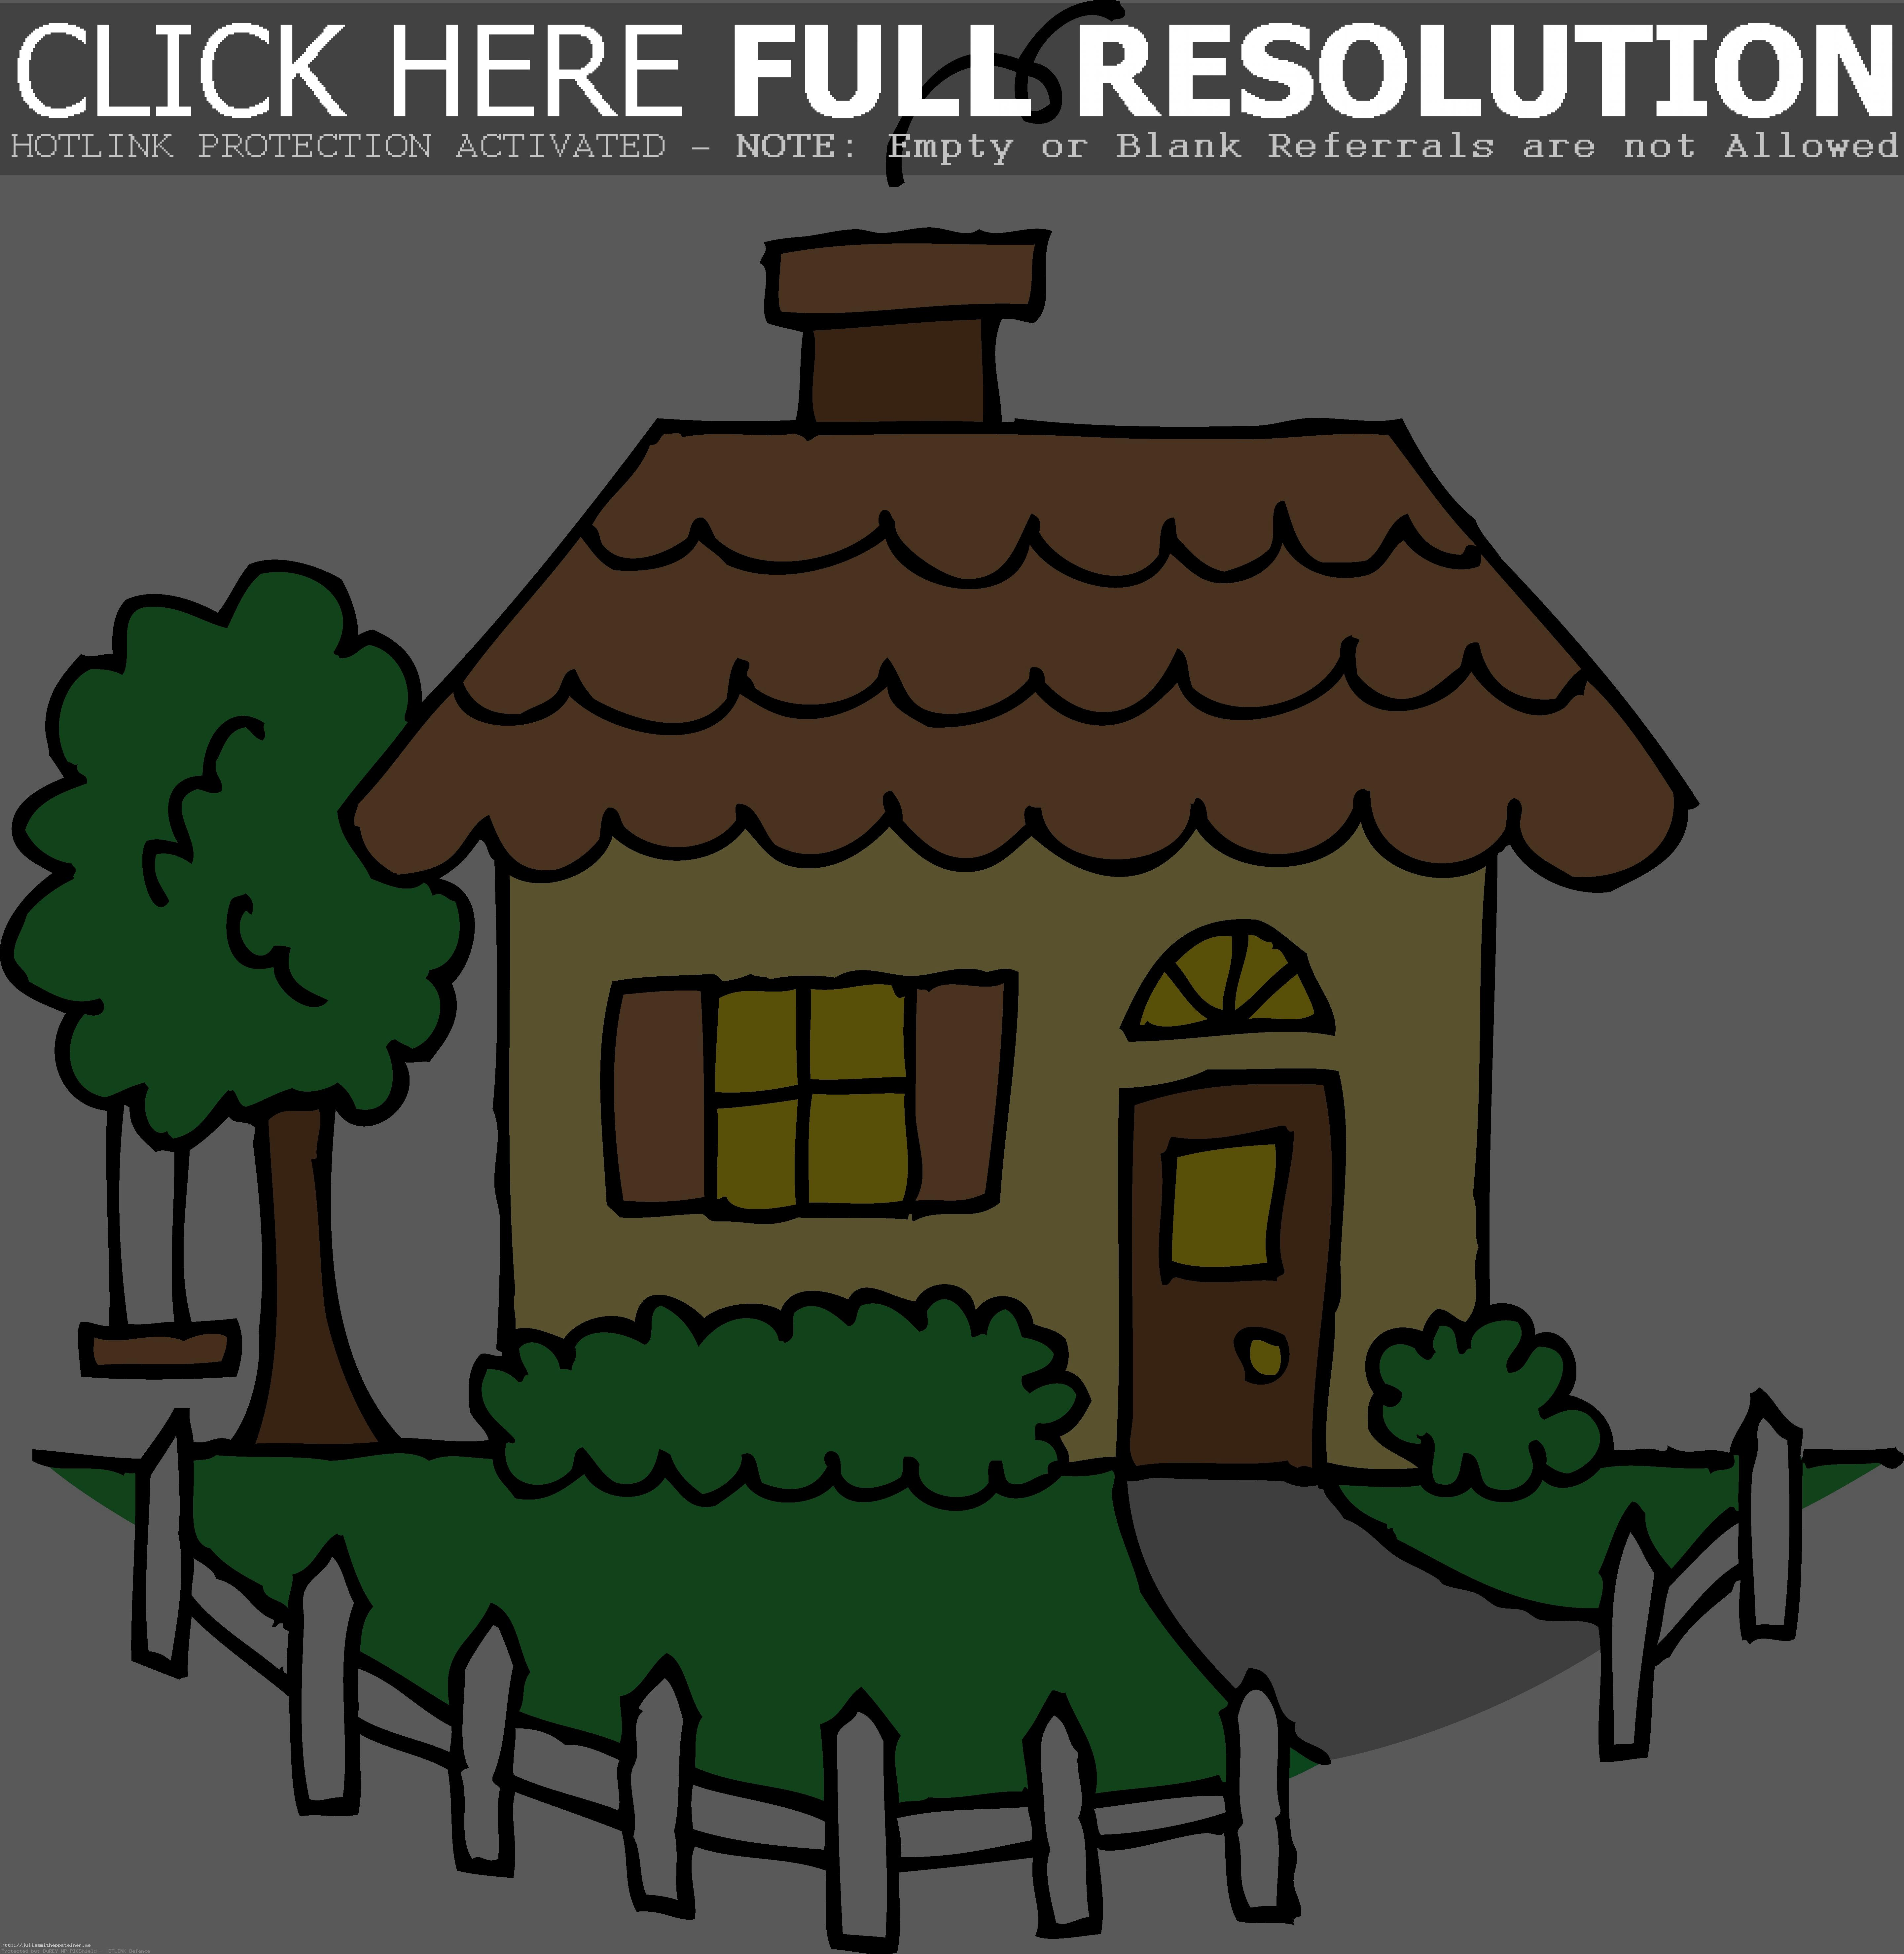 . ClipartLook.com Free Images Of Houses -. ClipartLook.com Free Images Of Houses Download Clip Art On Magnificent House Image ClipartLook.com -9